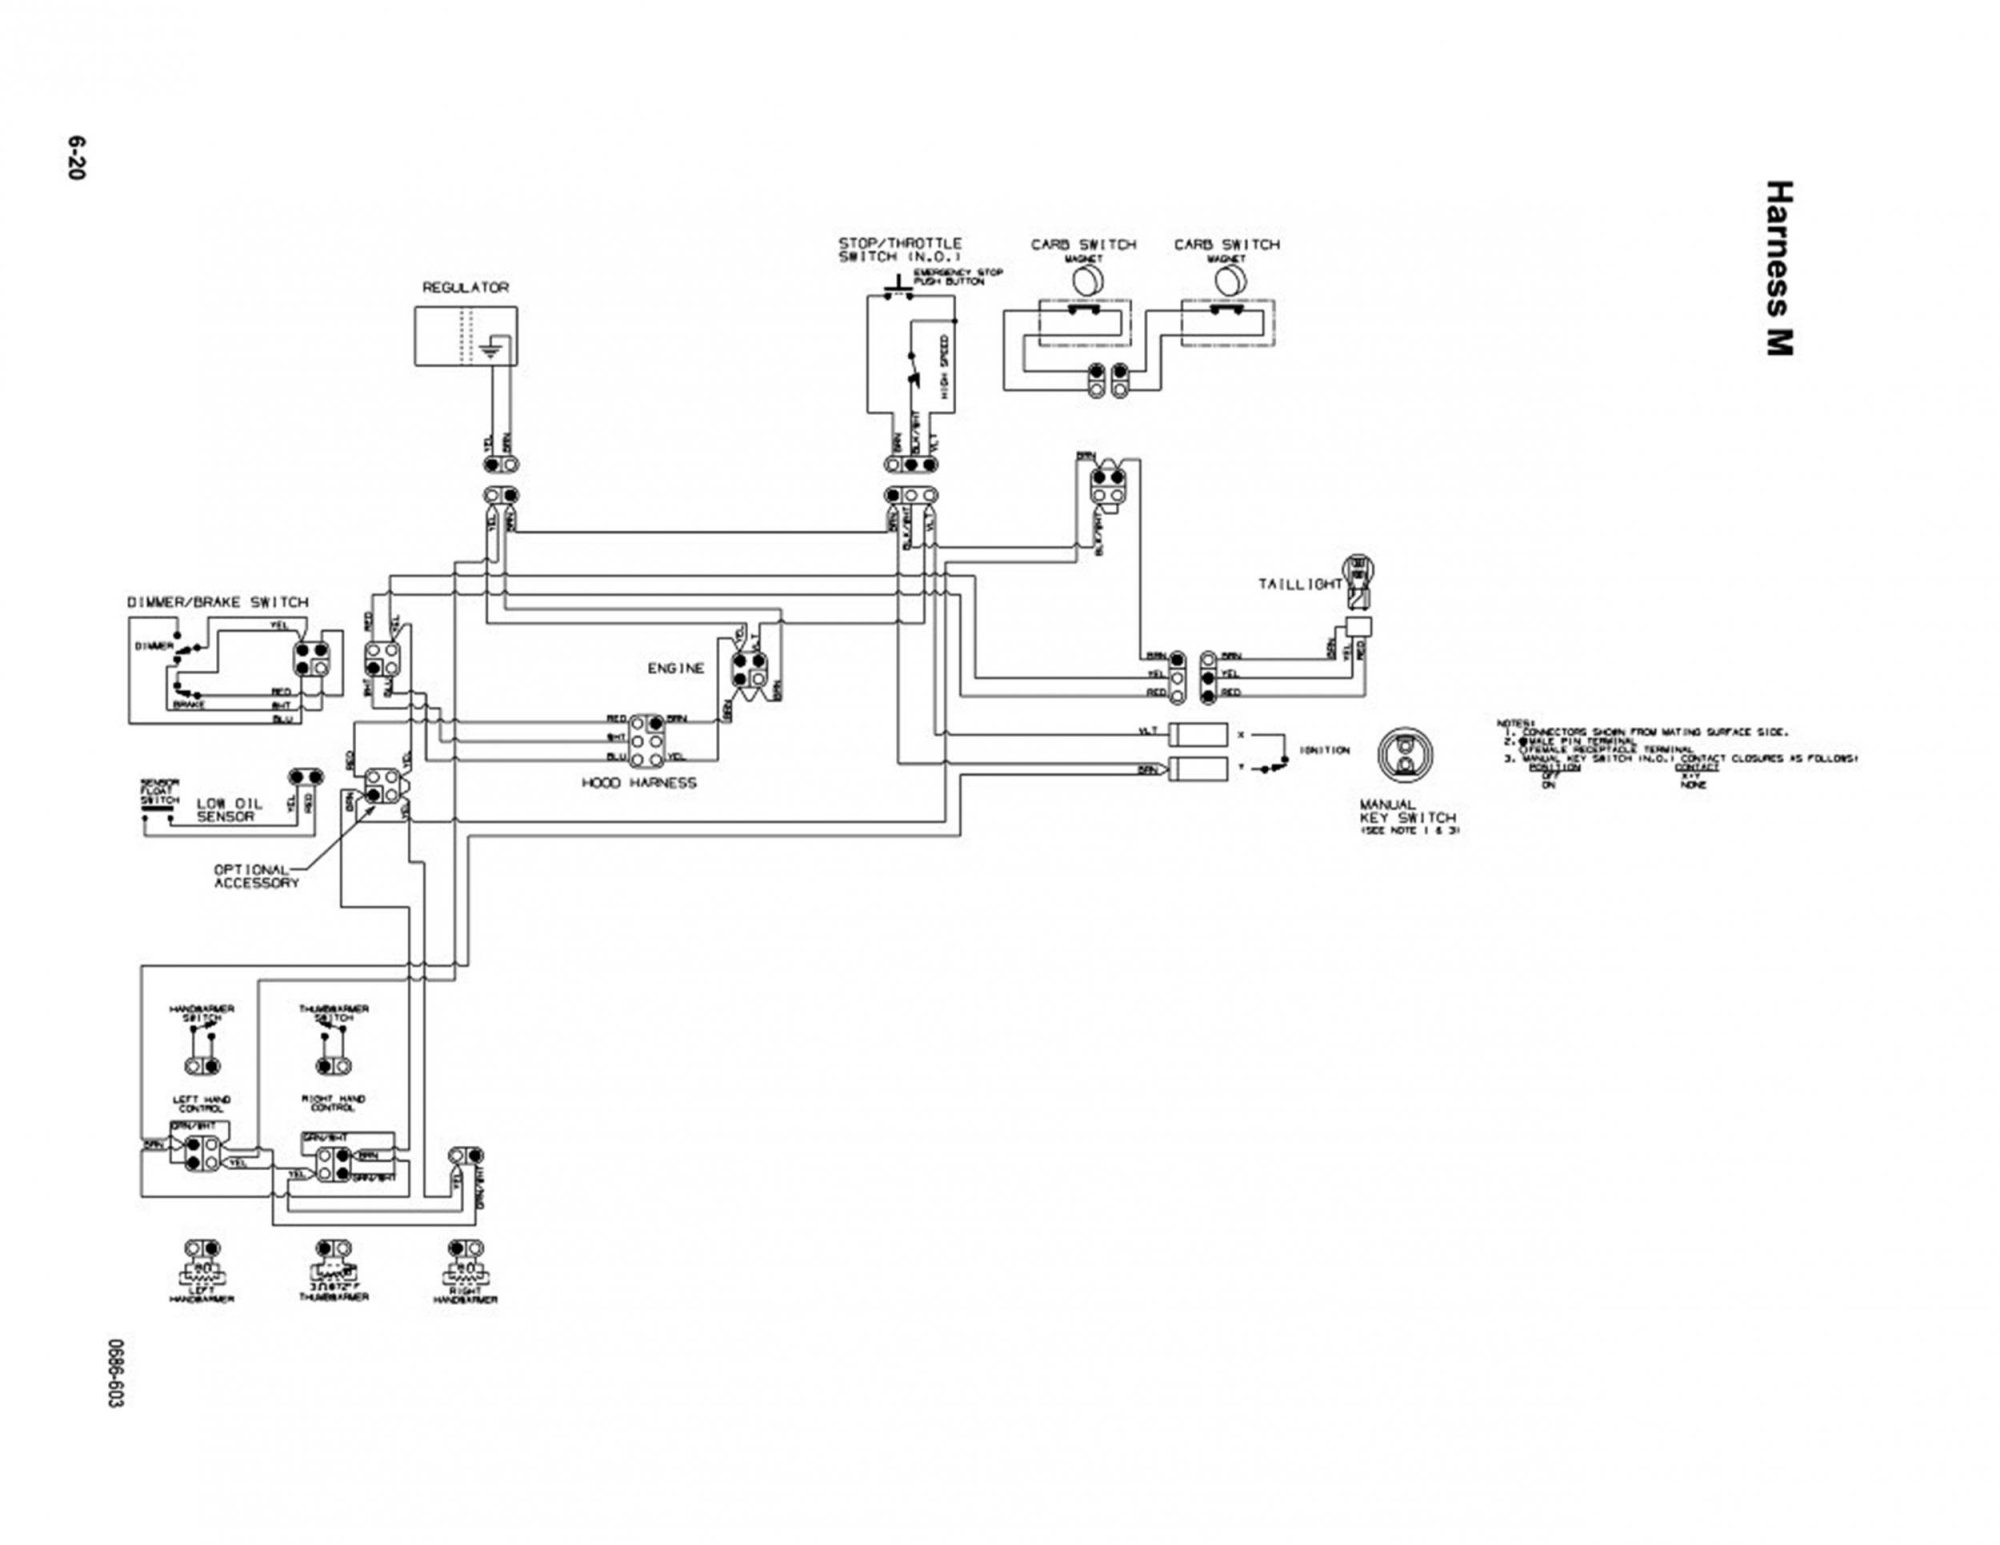 hight resolution of arctic cat z 440 wiring diagram wiring diagrams second arctic cat z 440 wiring diagram